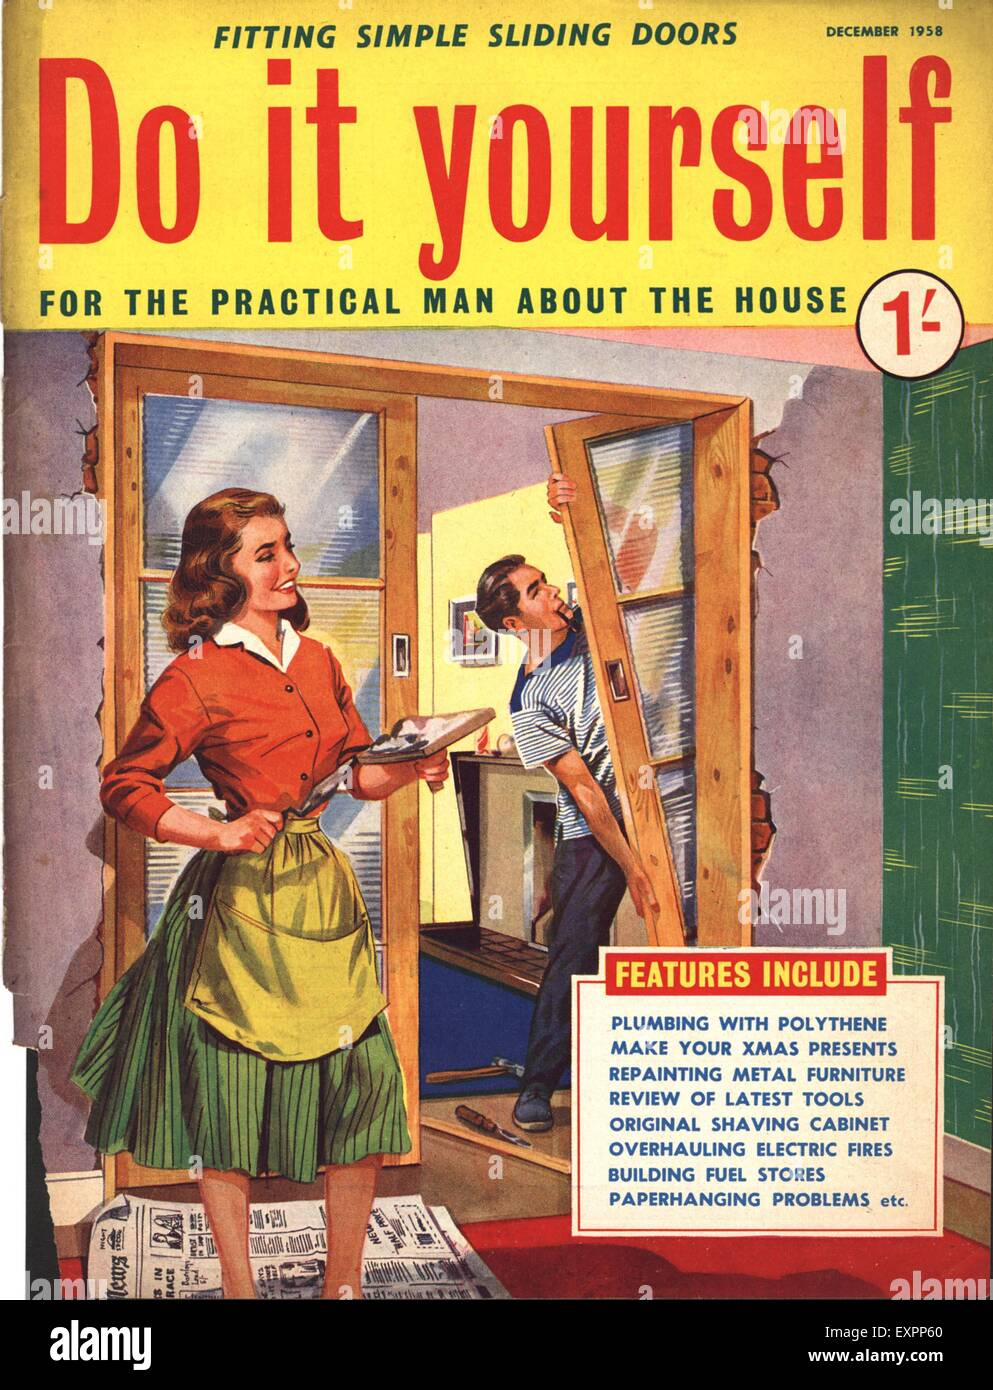 1950s uk do it yourself magazine cover stock photo 85322888 alamy 1950s uk do it yourself magazine cover solutioingenieria Gallery